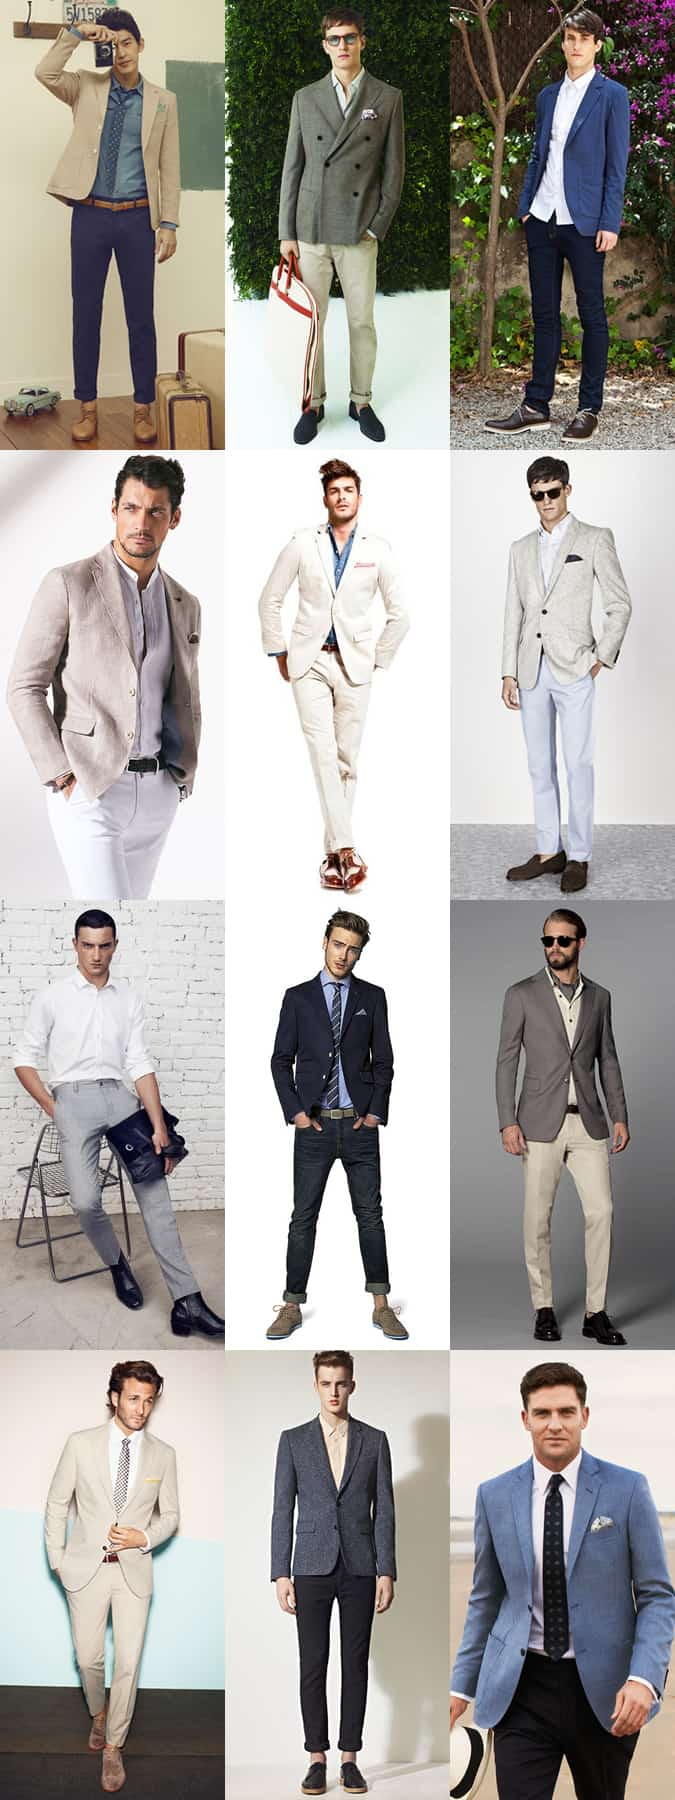 mens business casual lookbook for springsummer - Business Casual Men Business Casual Attire For Men